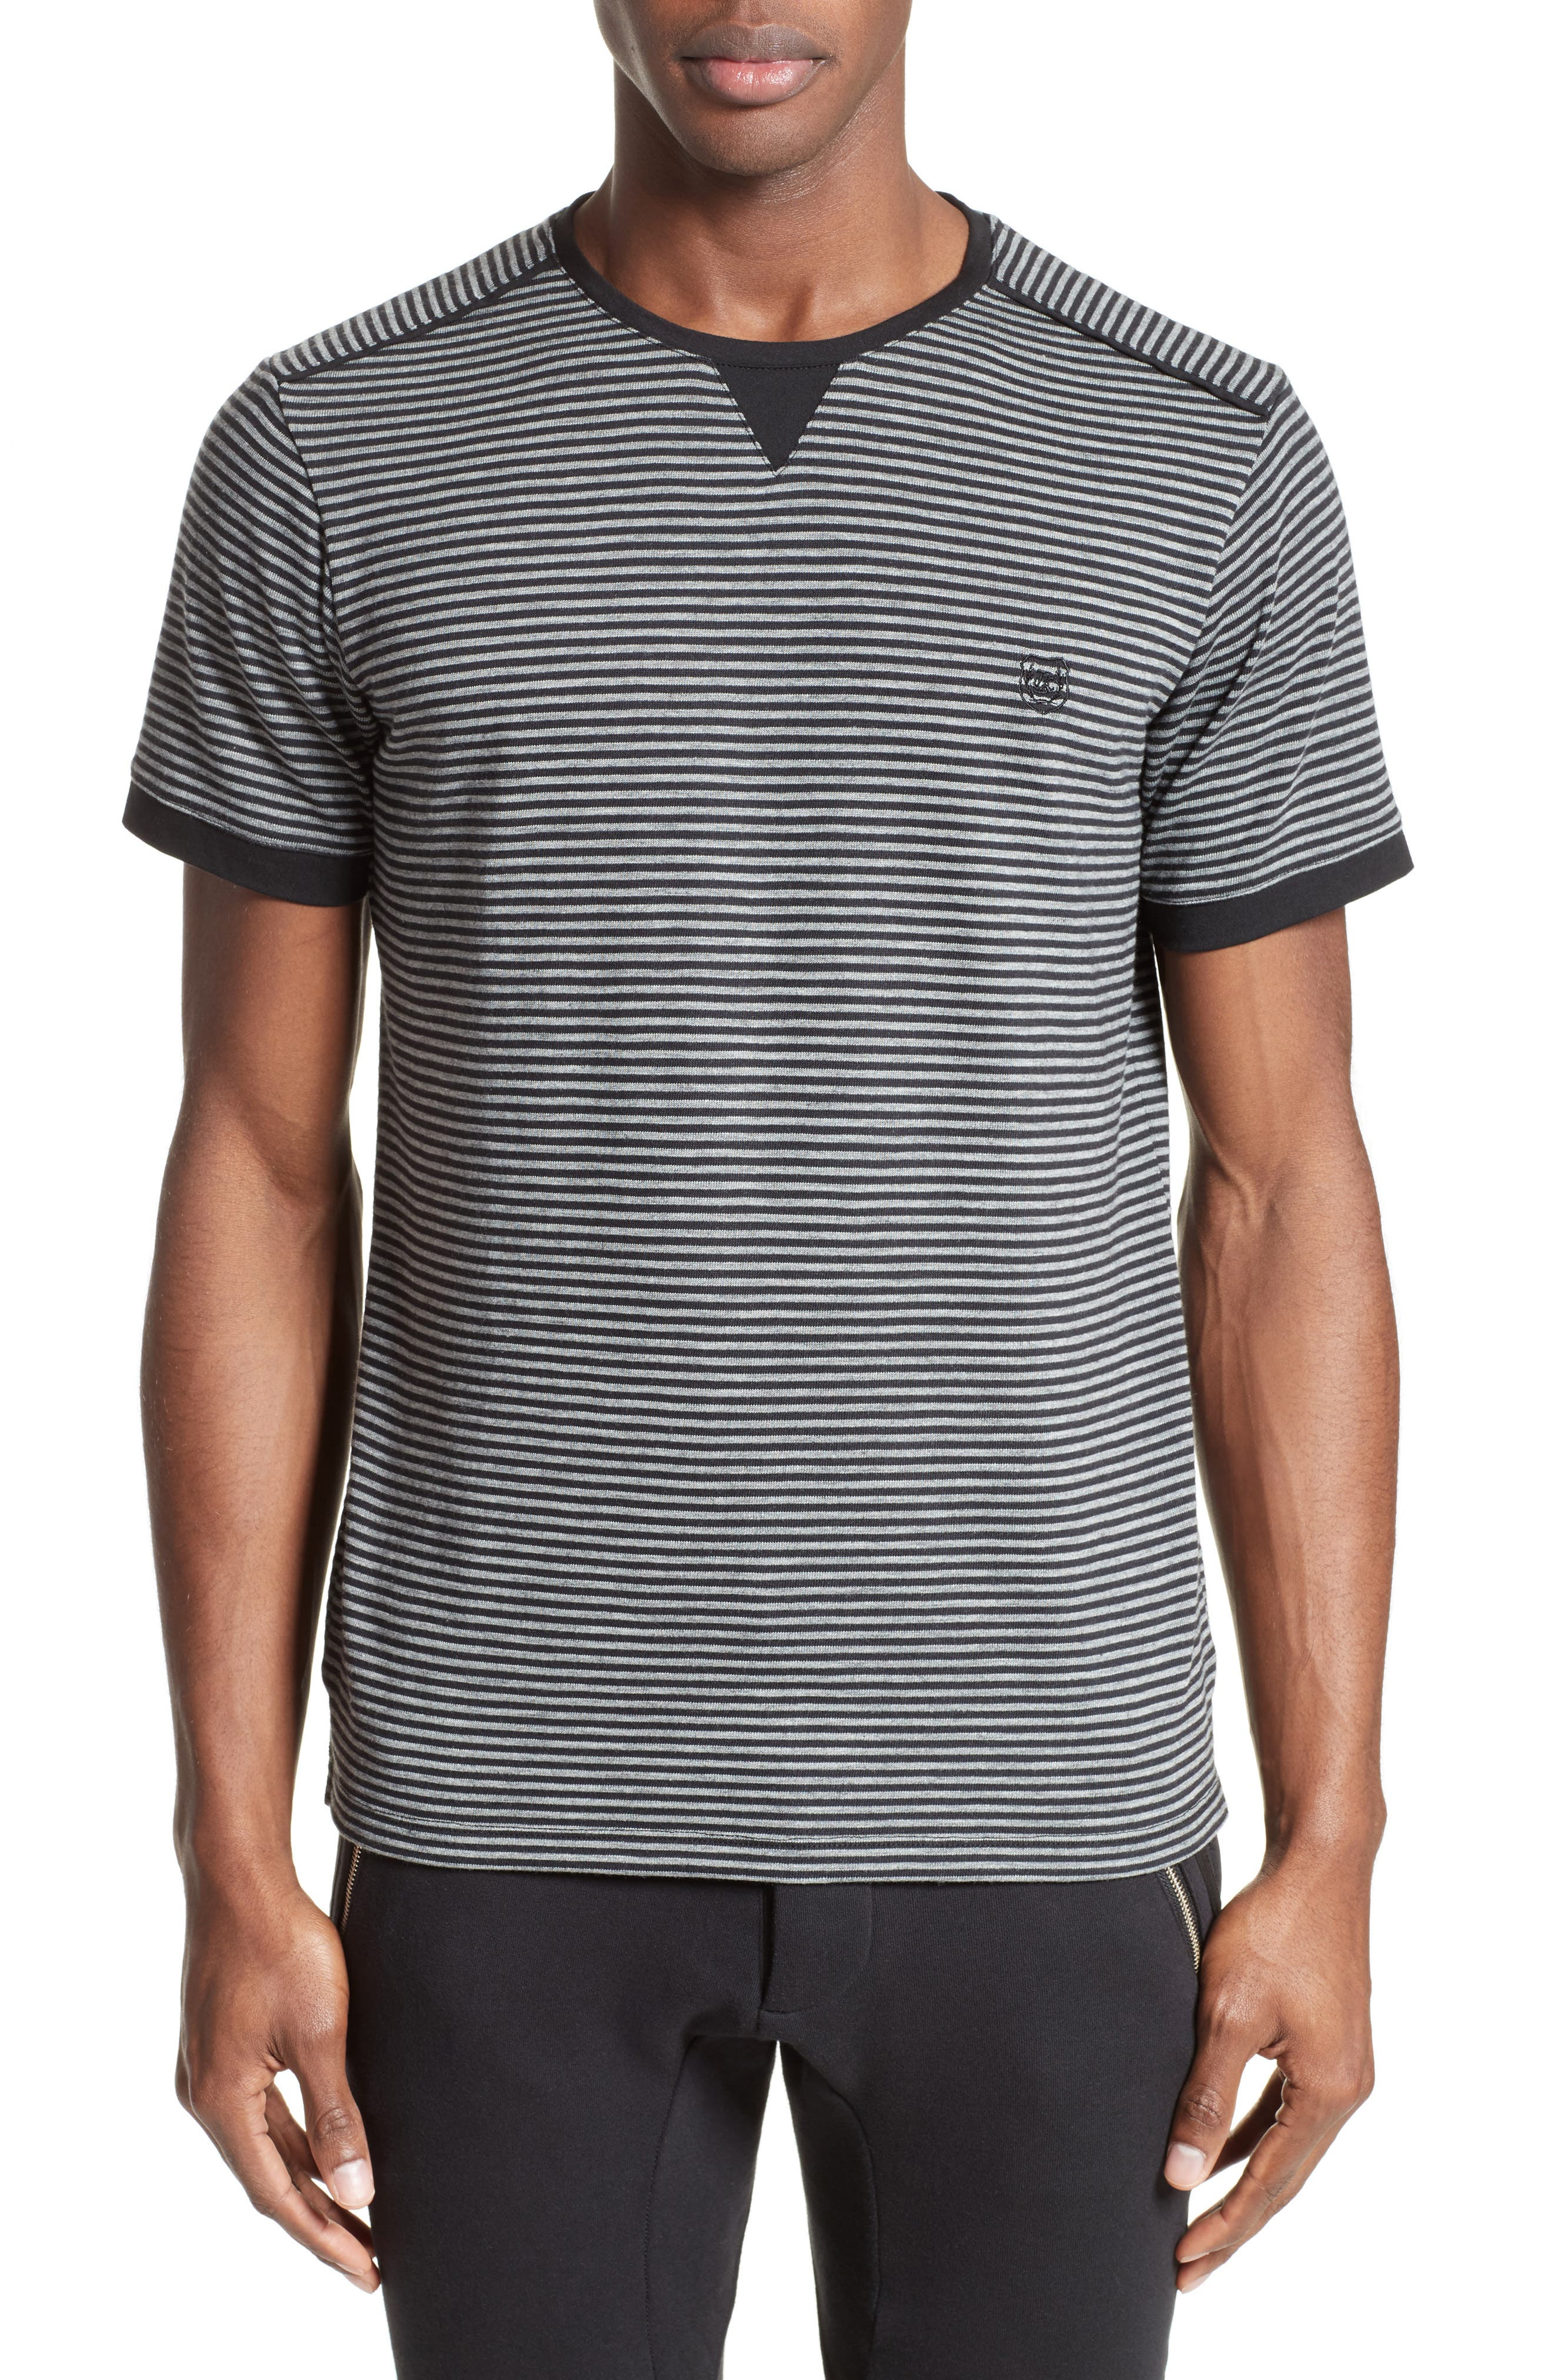 The Kooples Stripe T-Shirt